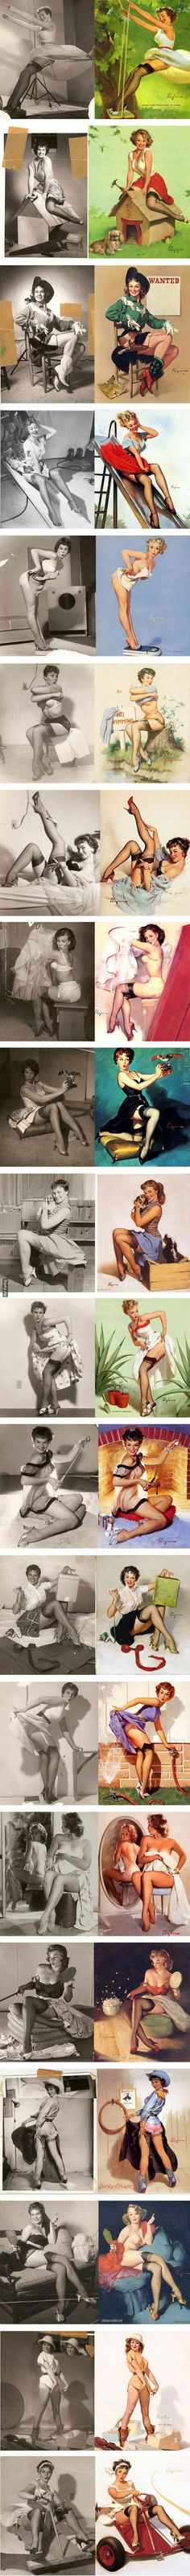 Pinup girls - it's interesting to see the changes made from the original inspiration pics.